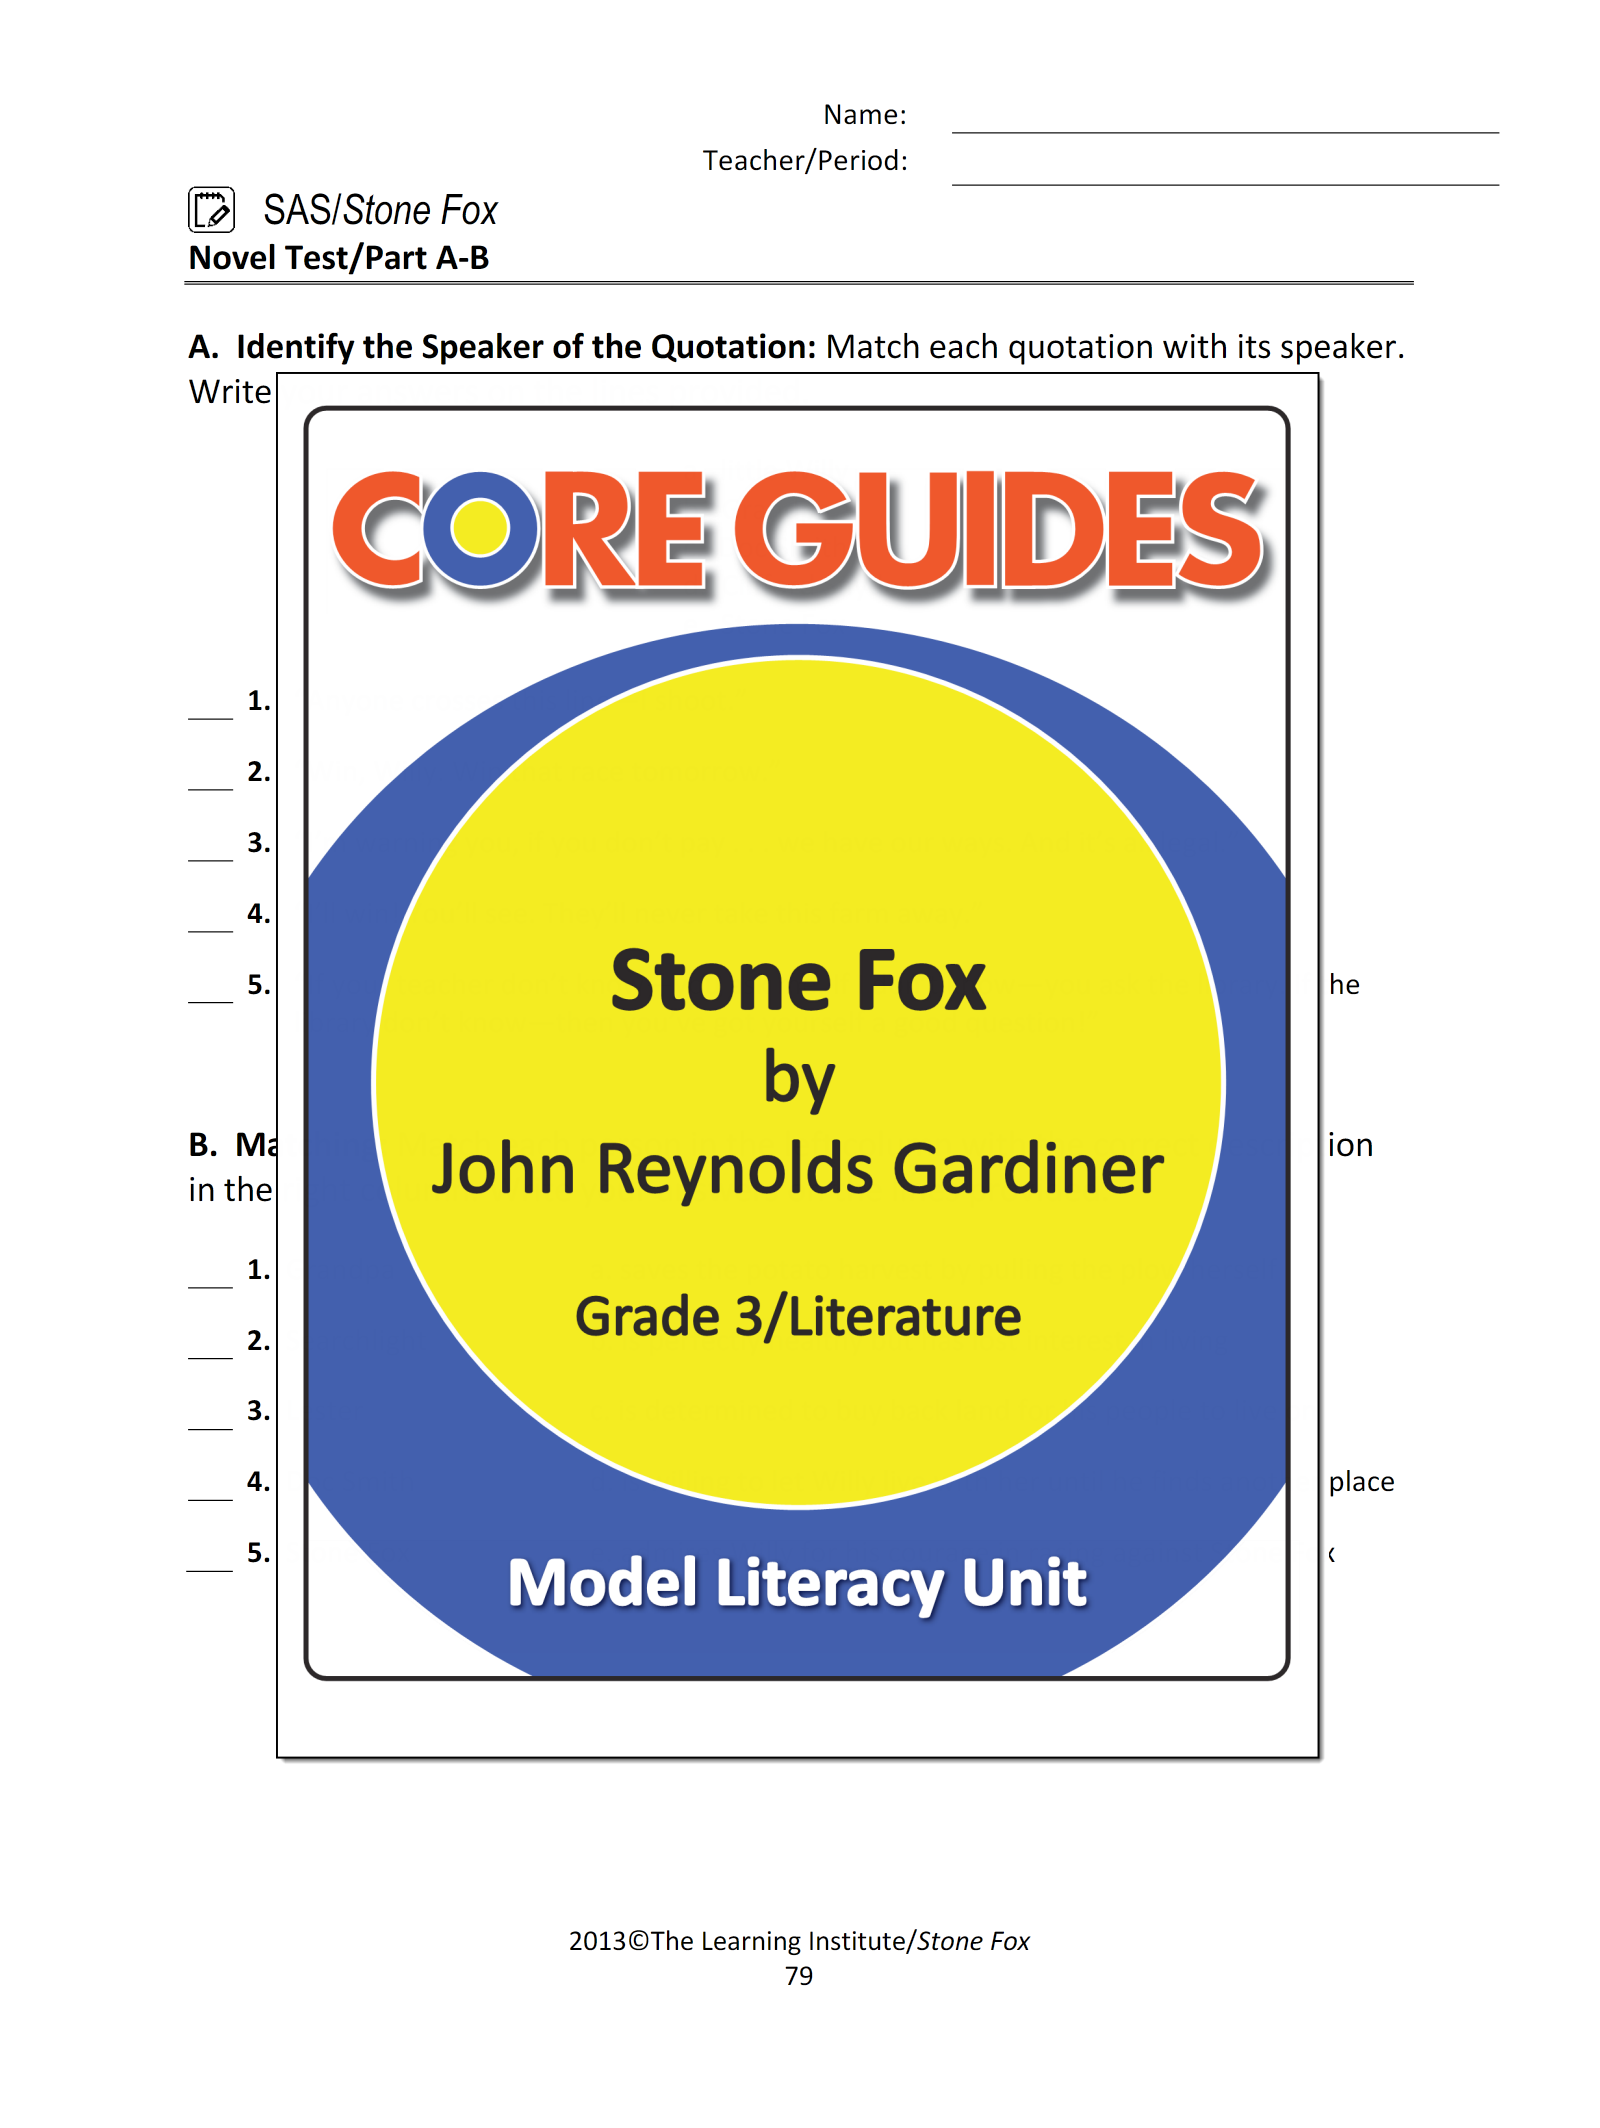 worksheet Stone Fox Worksheets download this freebie from our core guide on stone fox by john reynolds gardiner